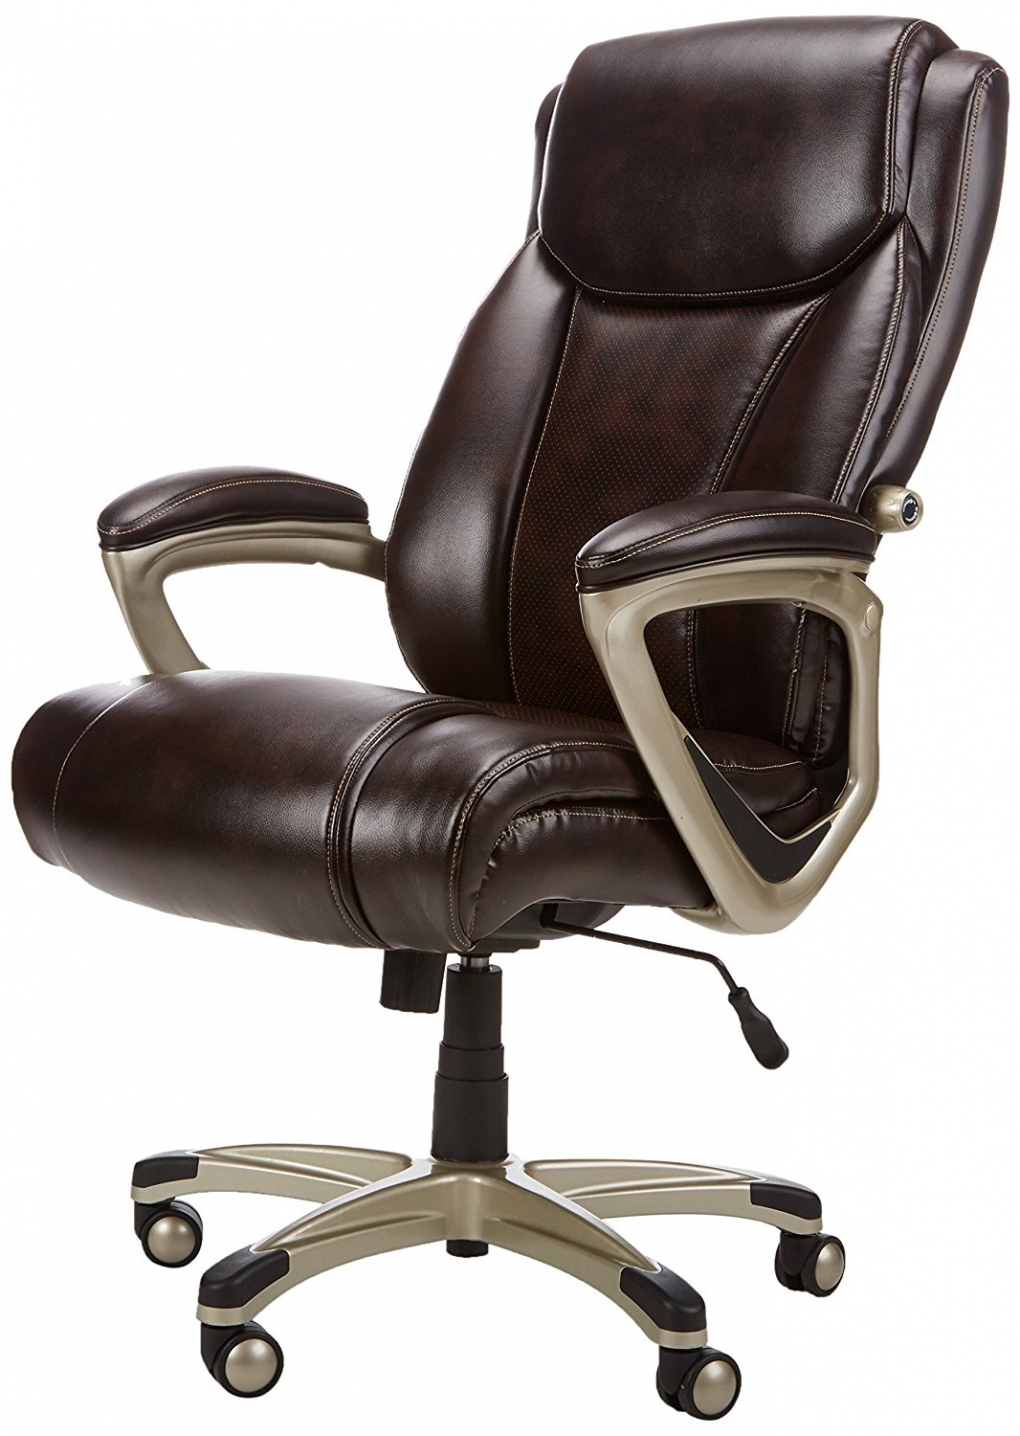 2019 Verona Executive Leather Office Chairs With Regard To Chair : Executive Leather Office Chairs Best Office Desk Chair (View 4 of 20)